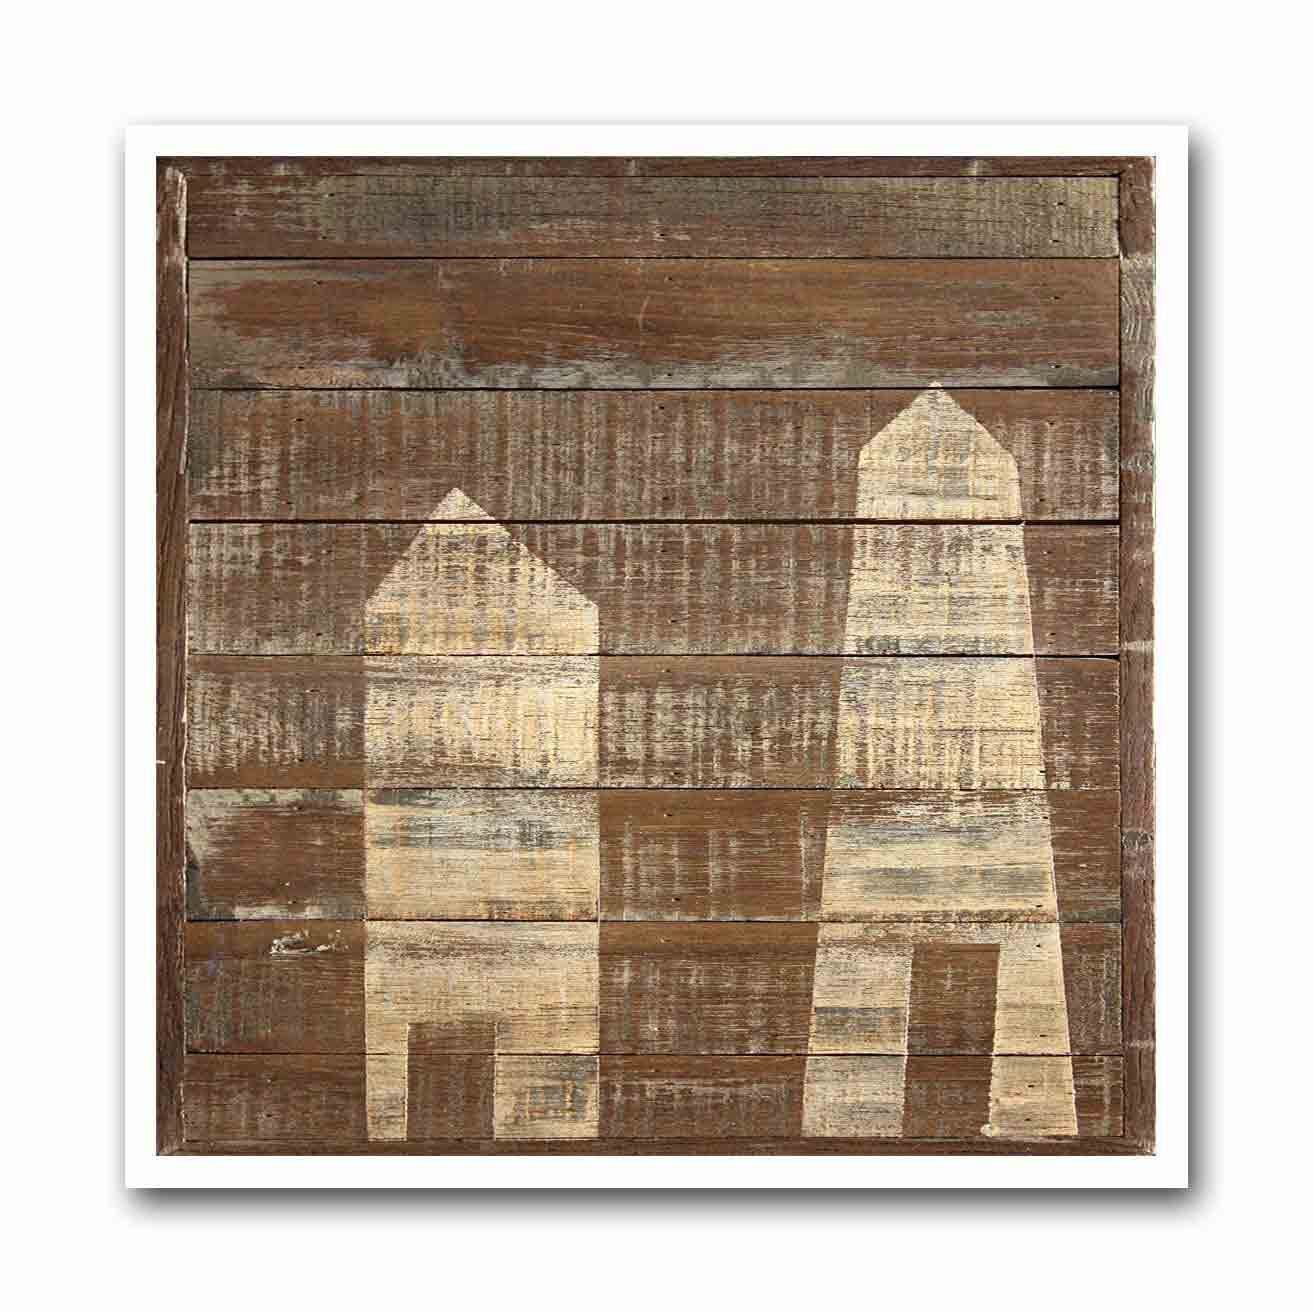 Swiss Wood Shed #2 Archival Print